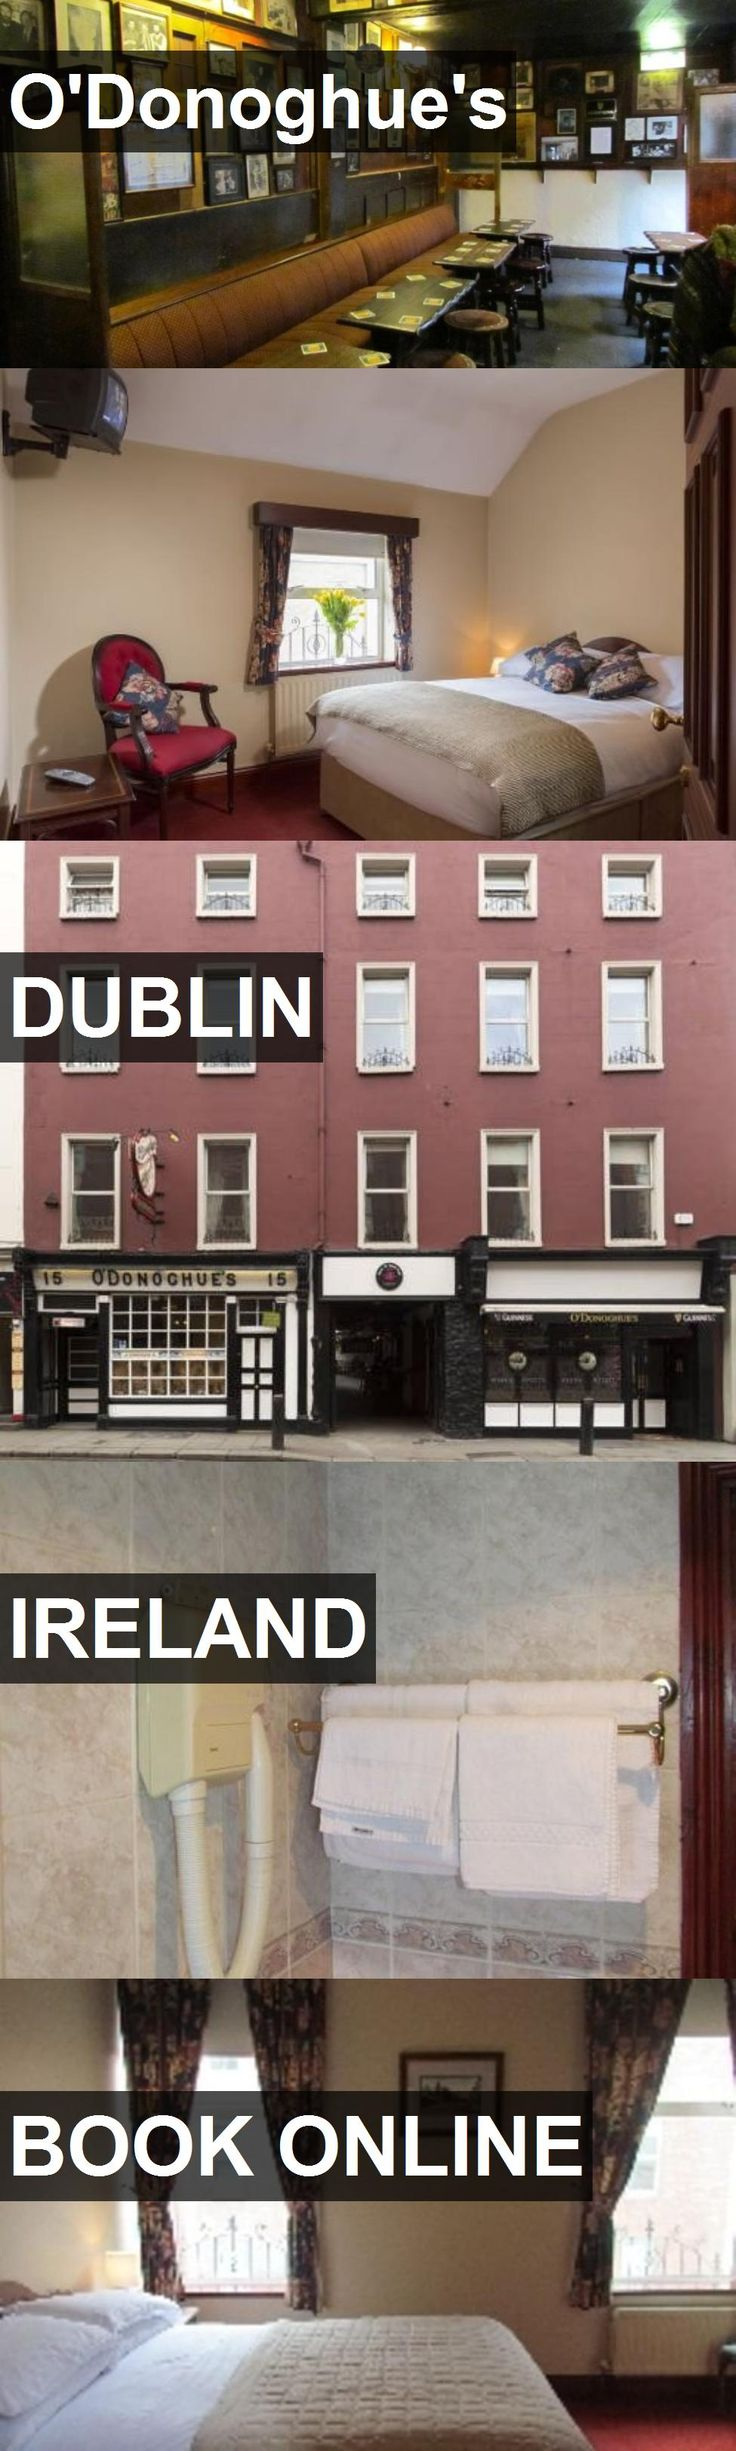 Hotel O'Donoghue's in Dublin, Ireland. For more information, photos, reviews and best prices please follow the link. #Ireland #Dublin #travel #vacation #hotel